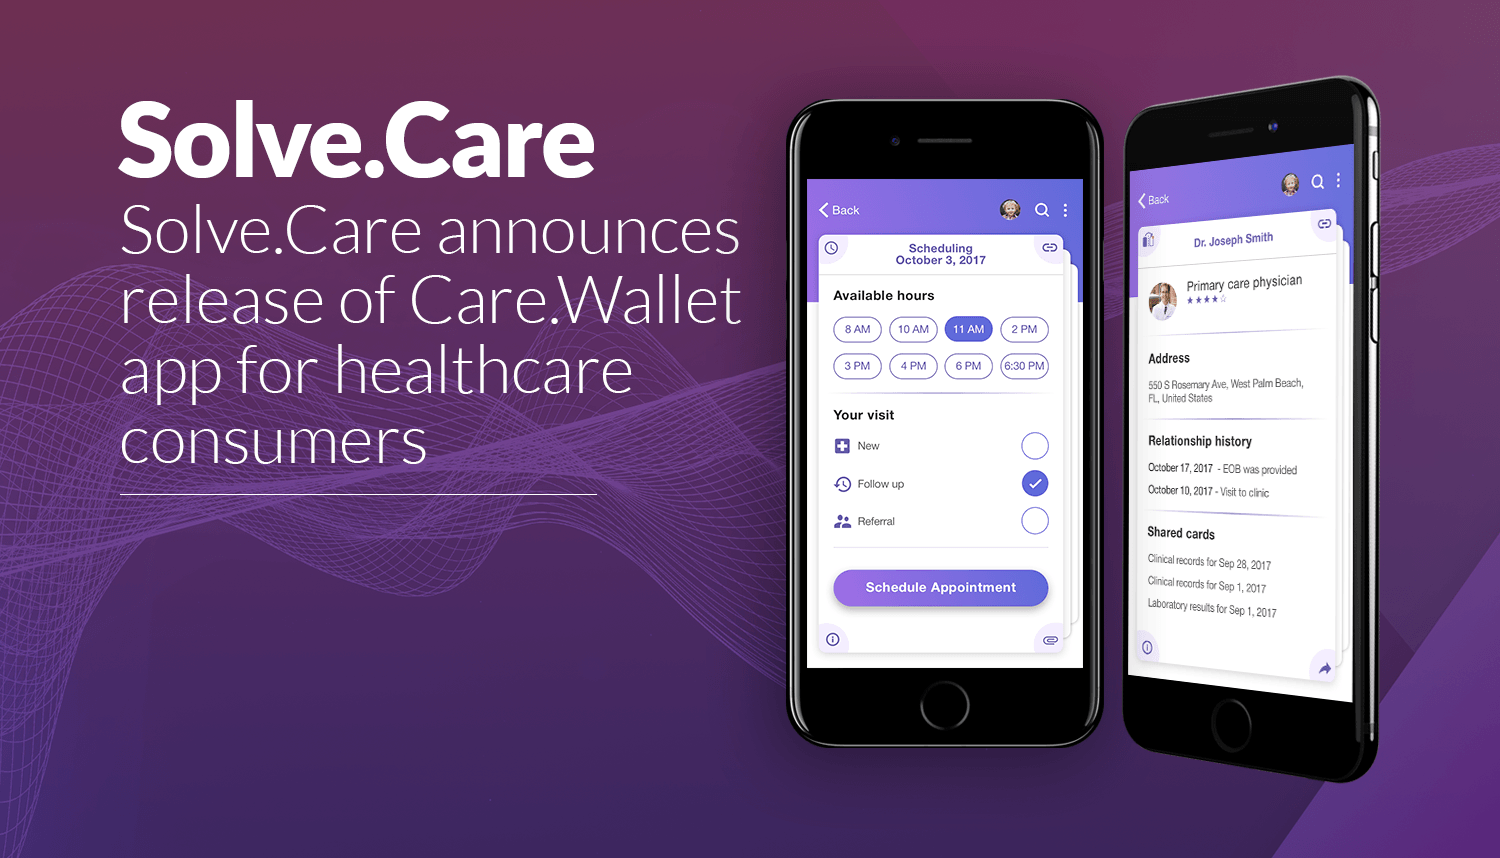 Blockchain Solve.Care Integrates With Uber Health to Deliver Non-Emergency Medical Transportation for Patients